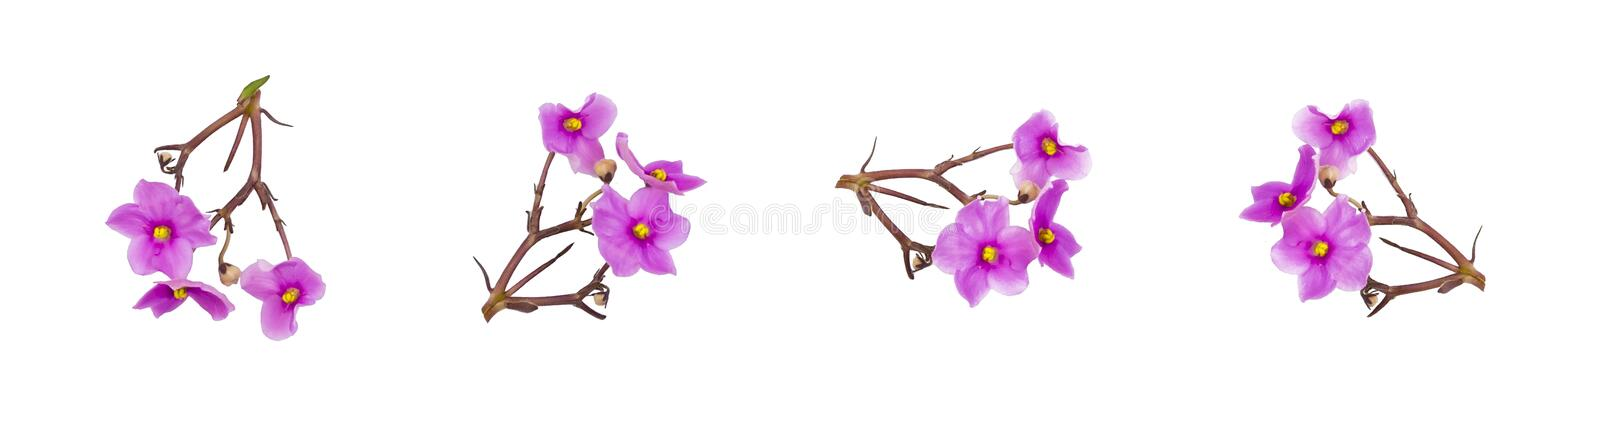 Saintpaulia African violets pink flowers isolated on white background royalty free stock photography